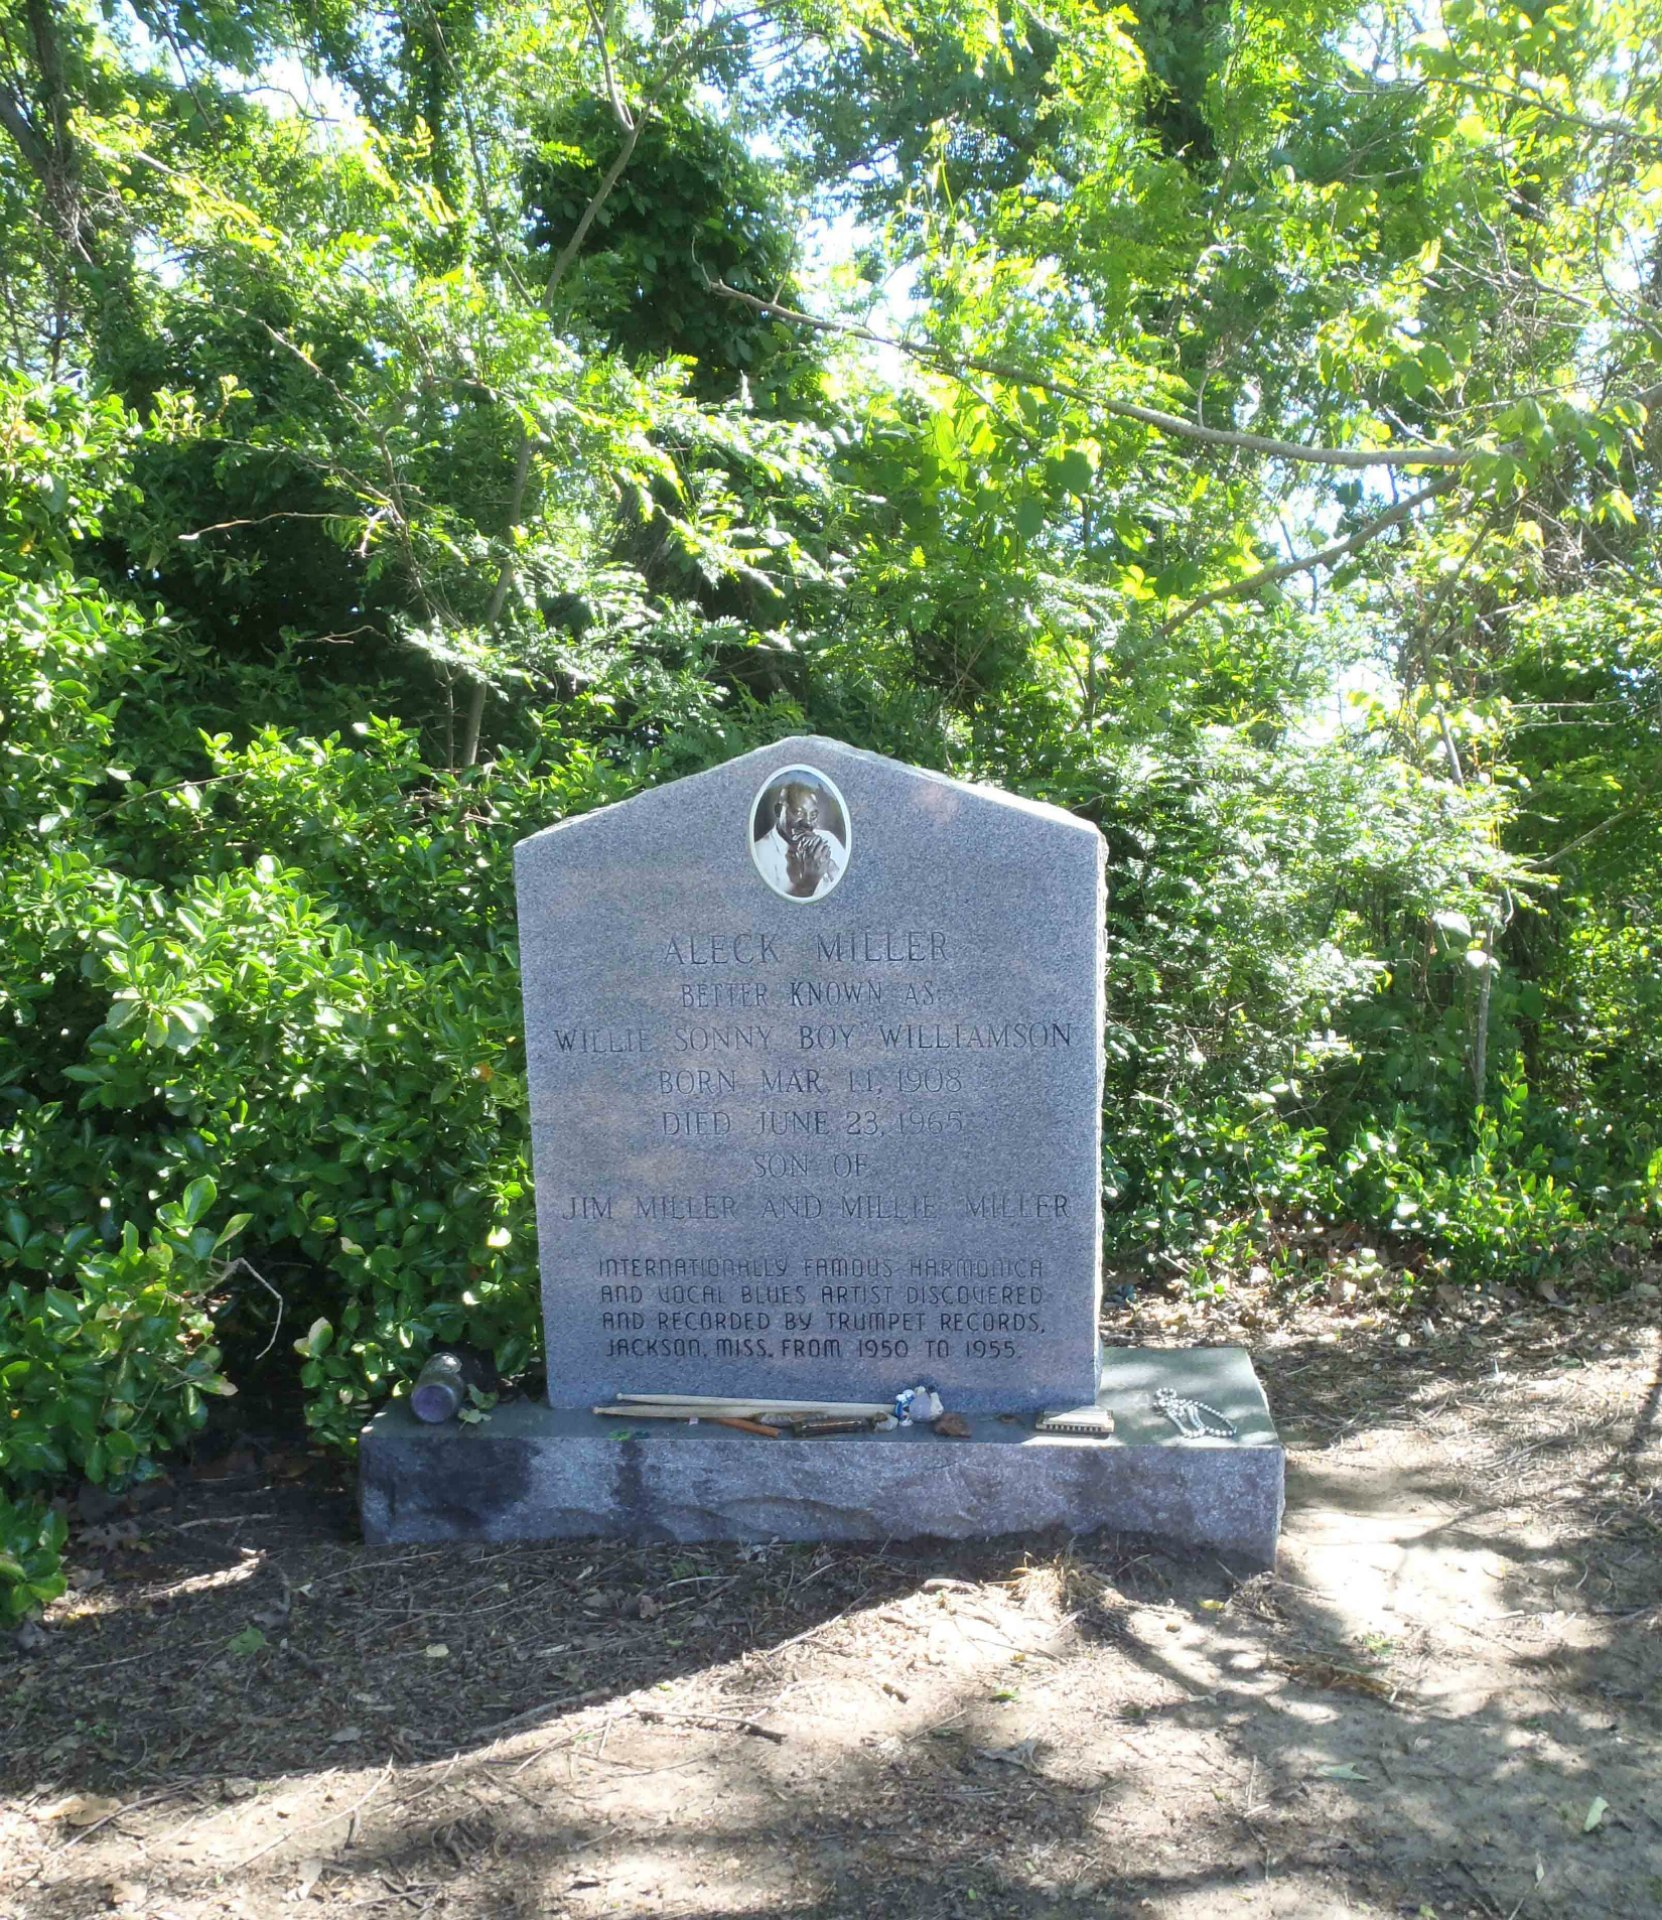 Sonny Boy Williamson grave near Tutwiler, Mississippi. The grave stone was placed by Lillian McMurray, whose Trumpet Records label made the first Sonny Boy Williamson recordings.